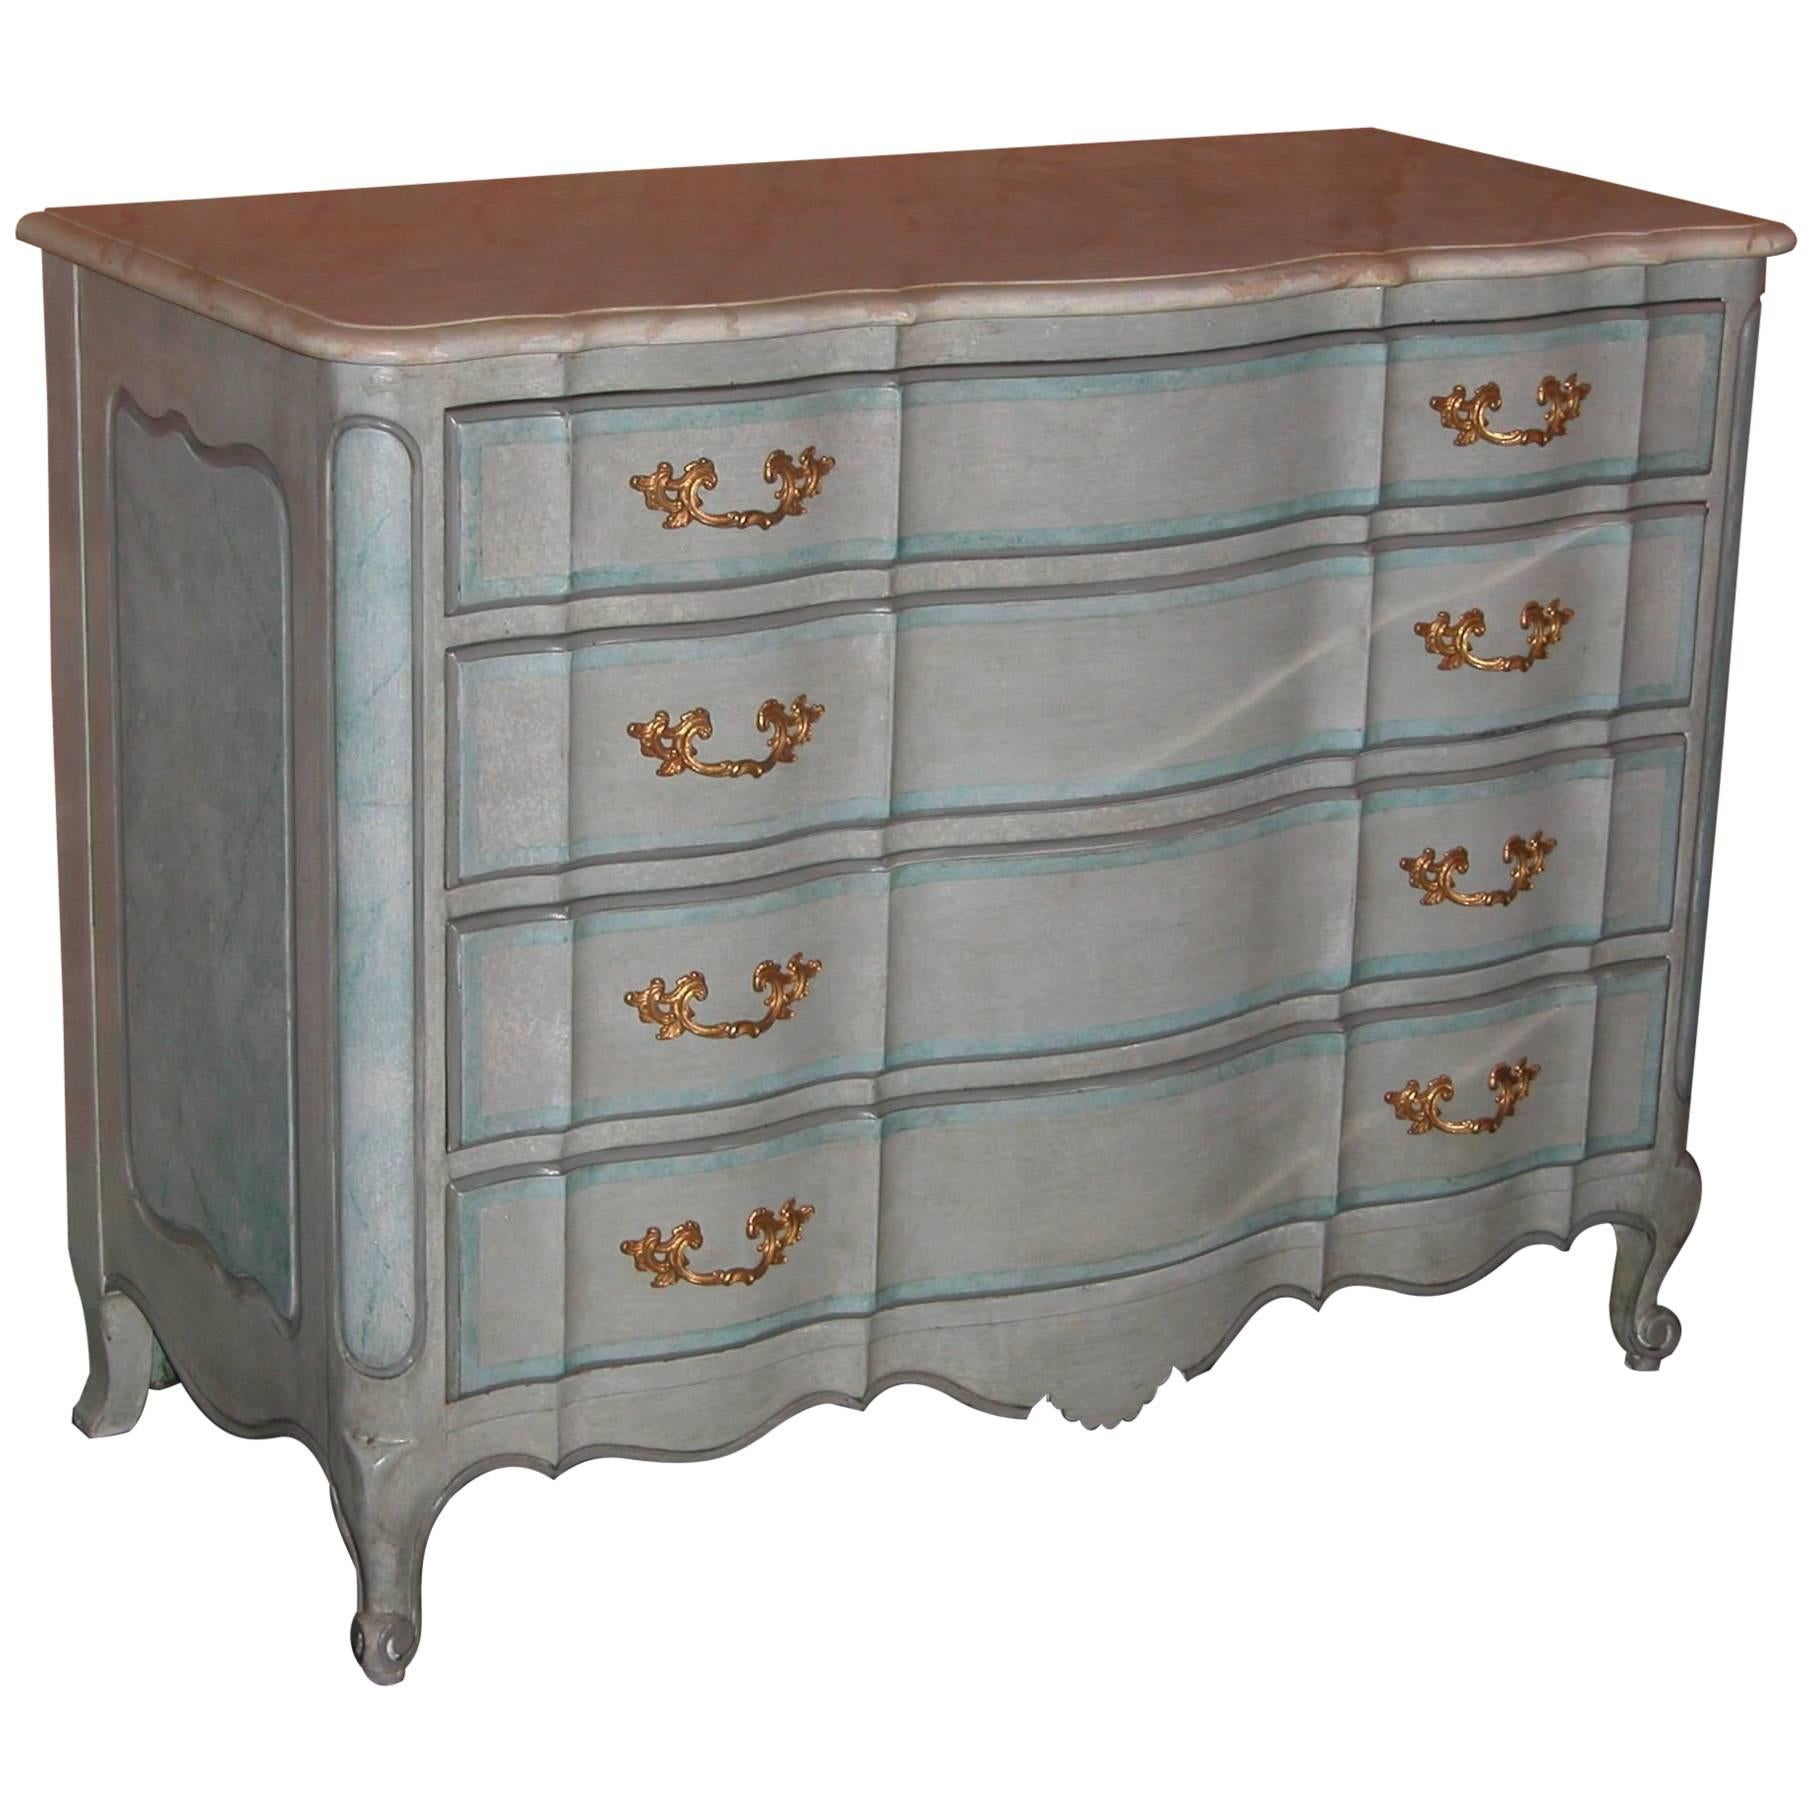 Louis XV Style Chest Drawers in Blue Painted Finish with Faux Marble Top, 1940s